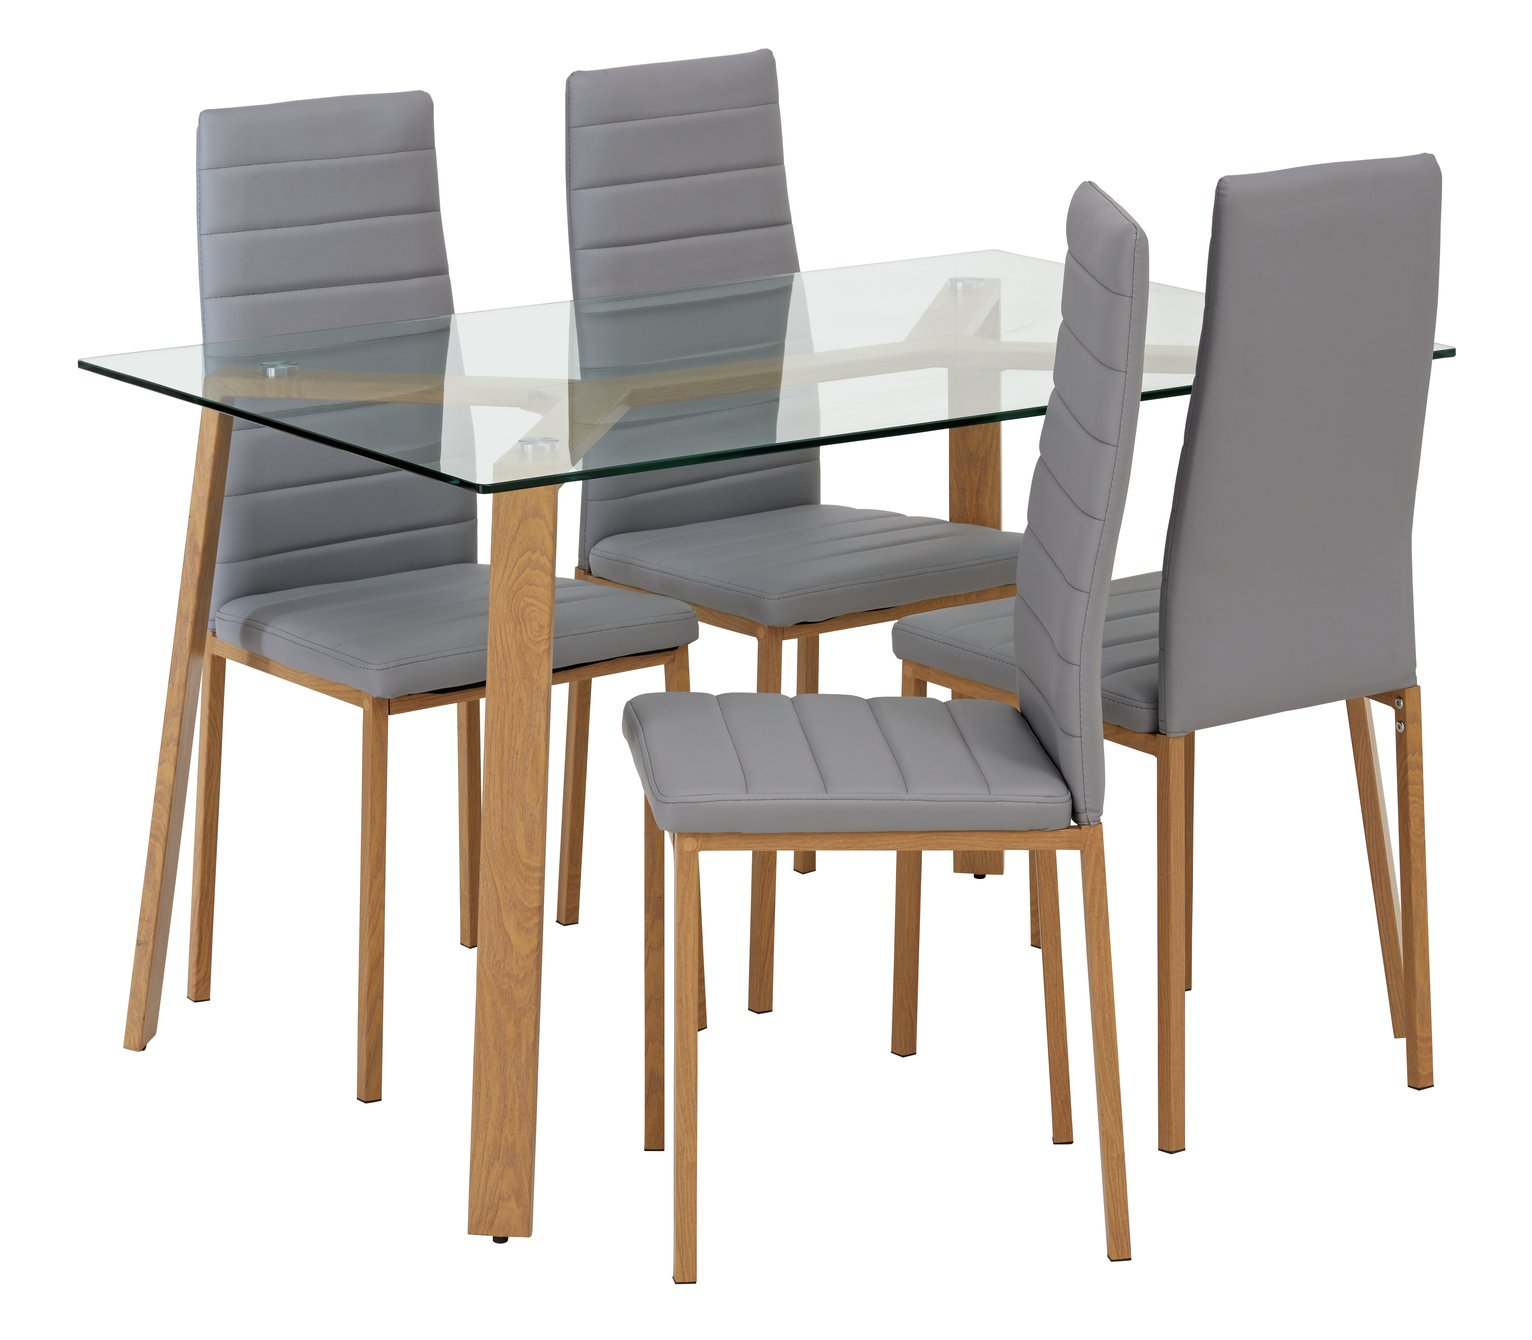 Table And Chairs: Dining Table And Chairs, Kitchen Table